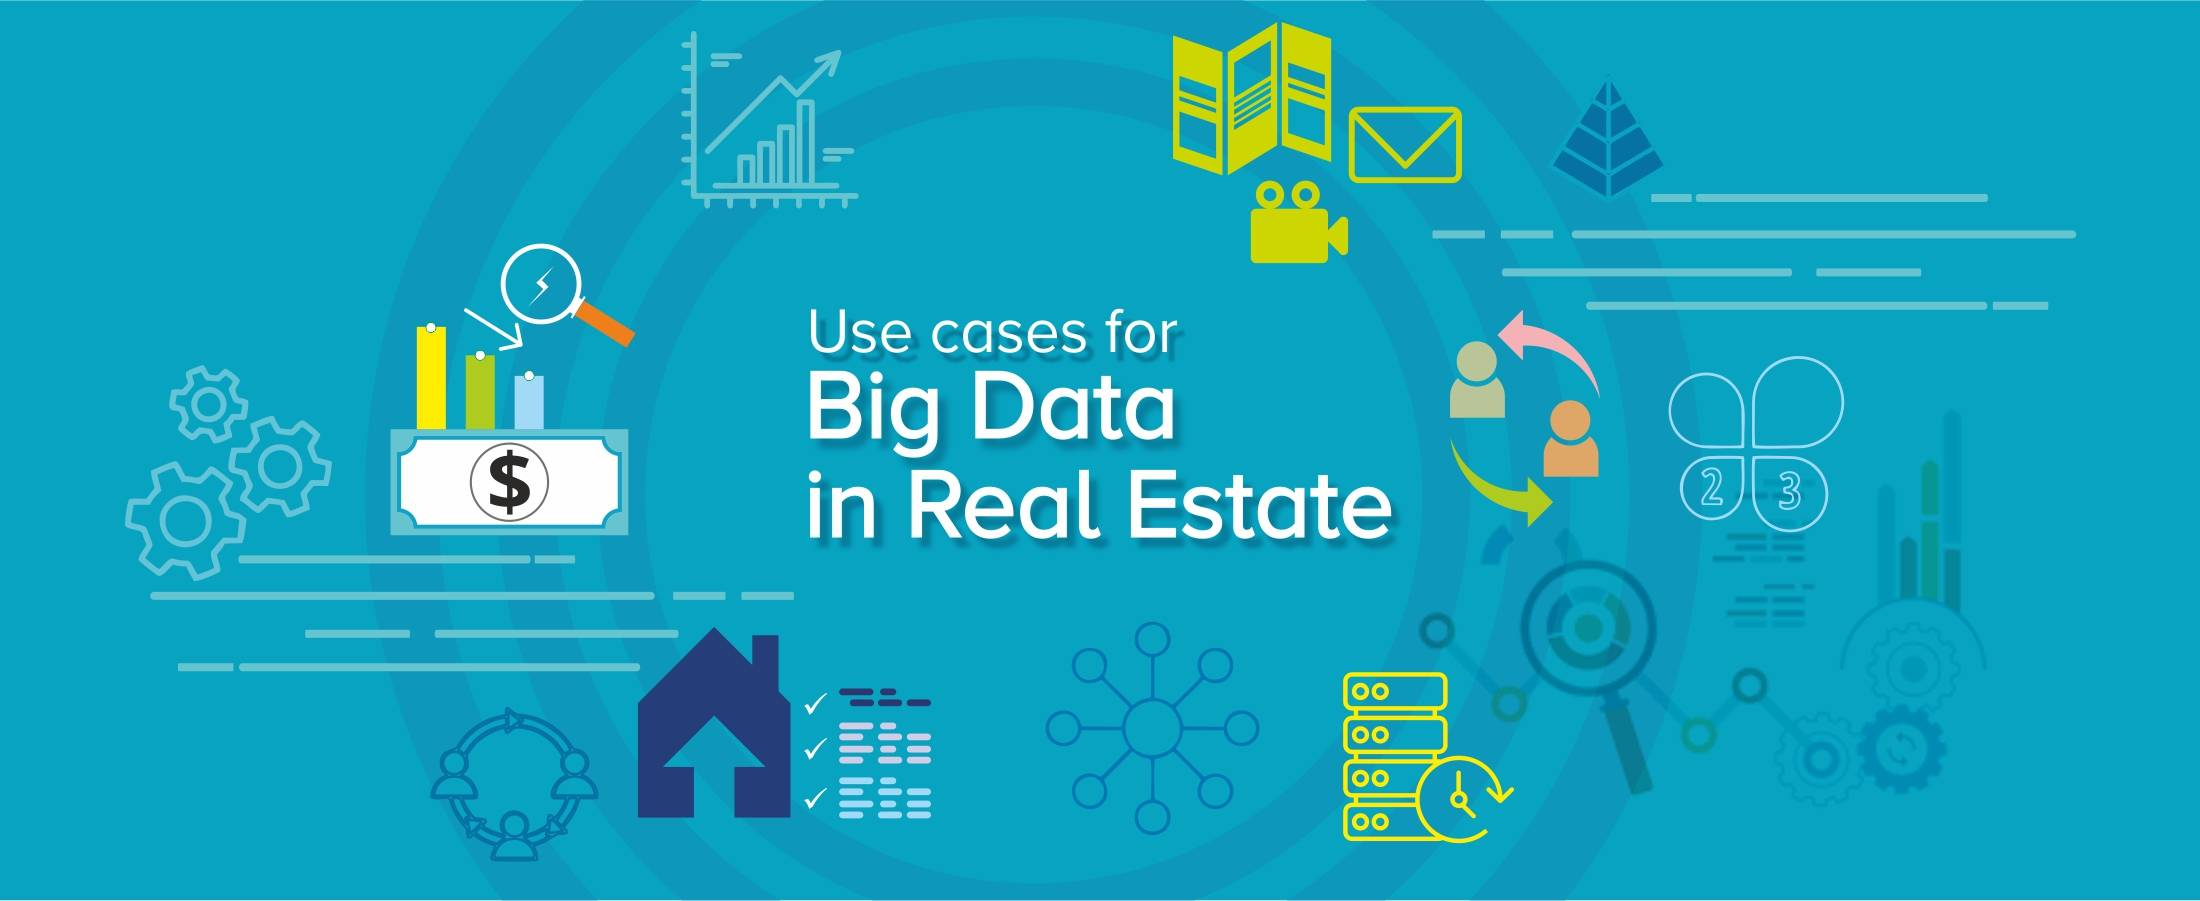 Use cases for Big Data in Real Estate